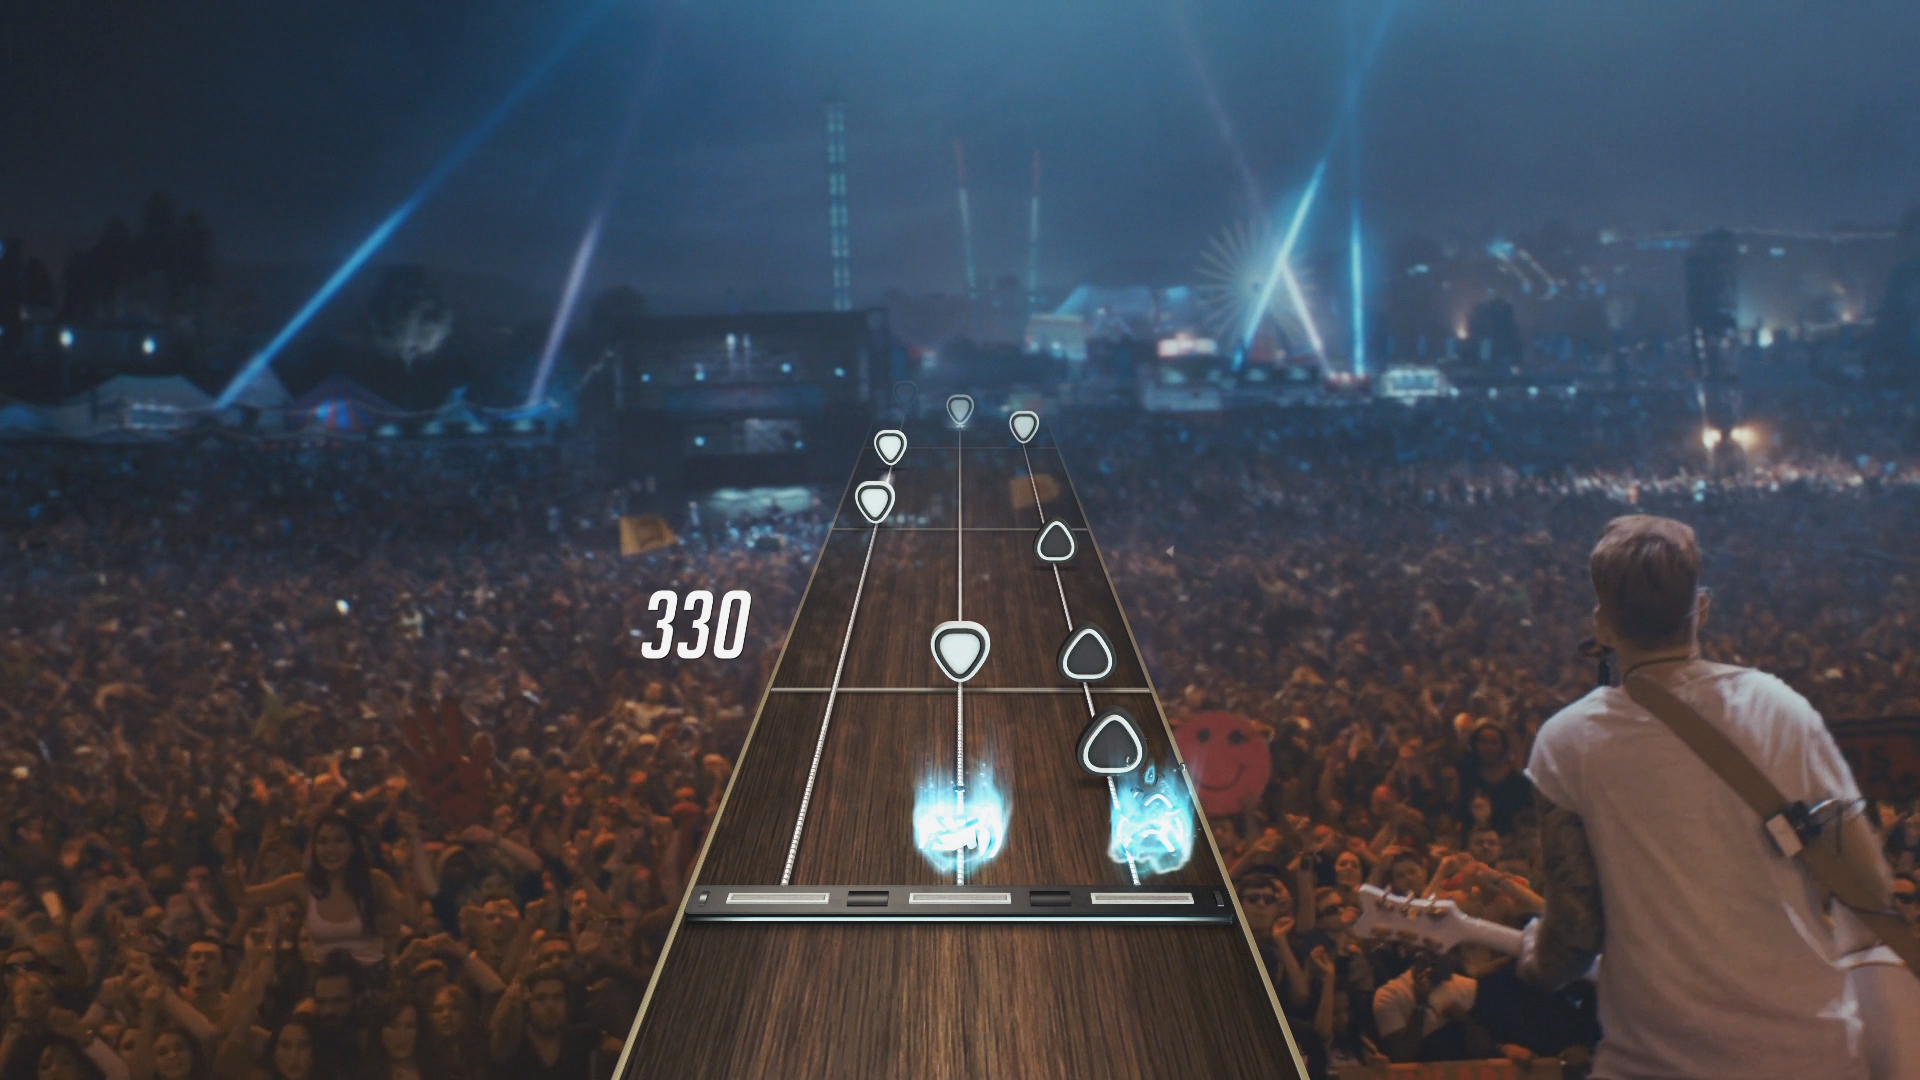 Activision is bringing back its $3 billion 'Guitar Hero' music franchise this fall.